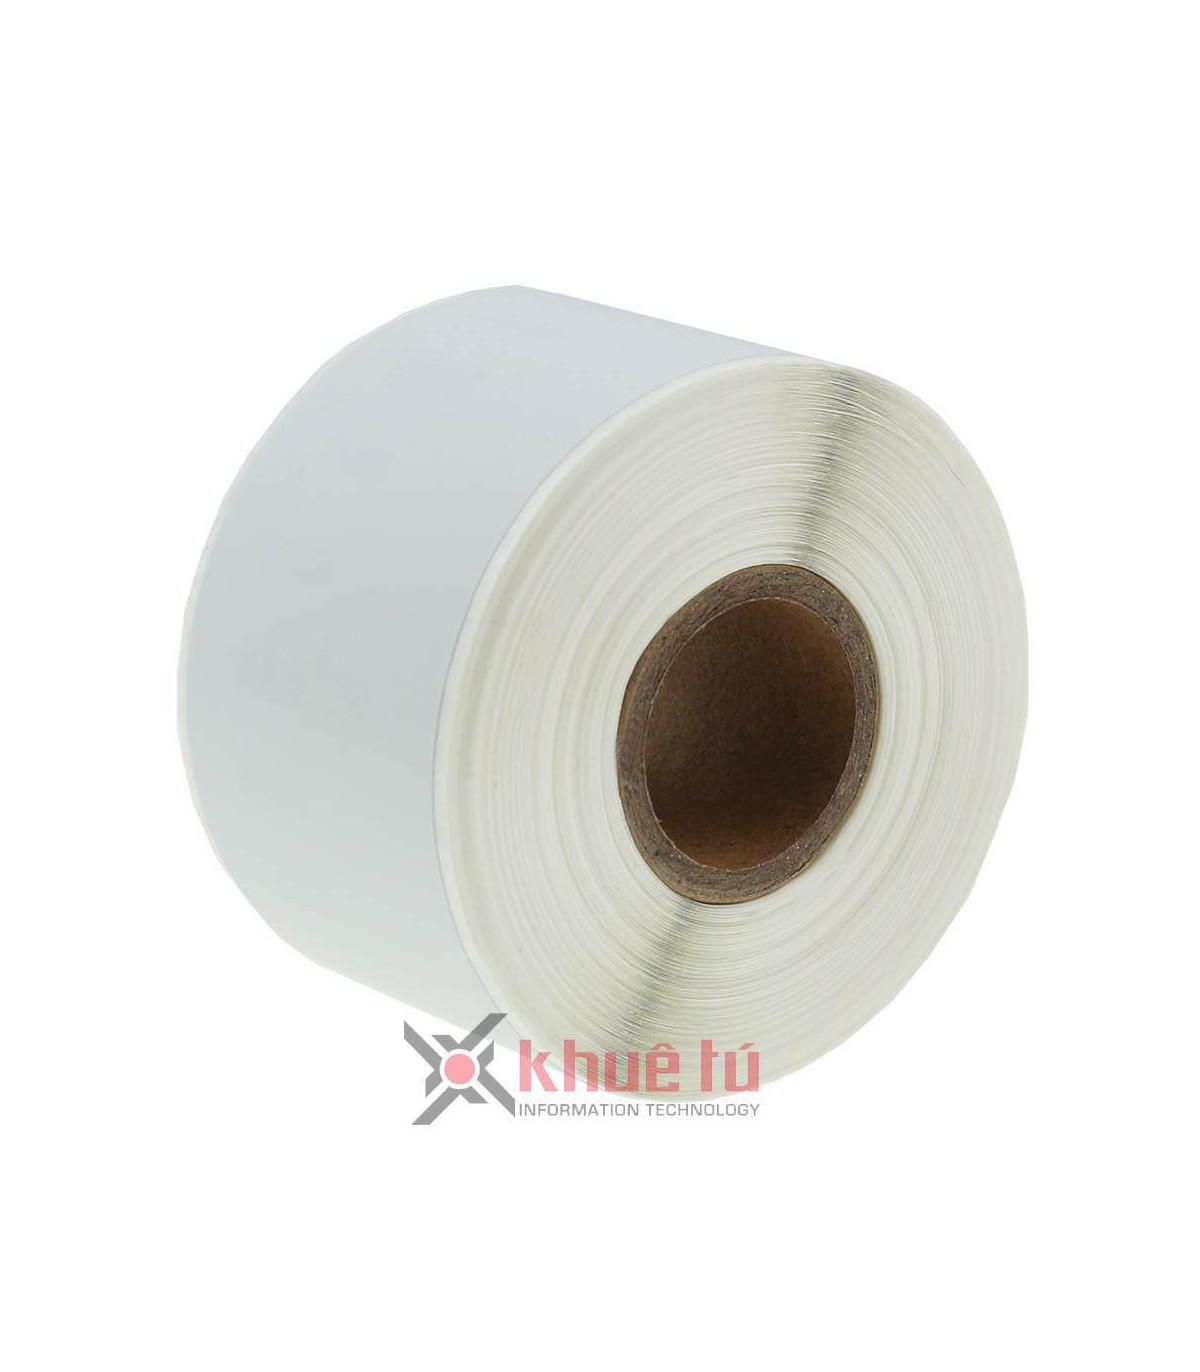 DM-A99018, Black on White, 38mm x 190mm x 110 Labels | ⓿❽❻❽❺⓿❺⓿❺❺ | Nhãn in, tem in, giấy in, băng nhãn, tape in | khuetu.vn